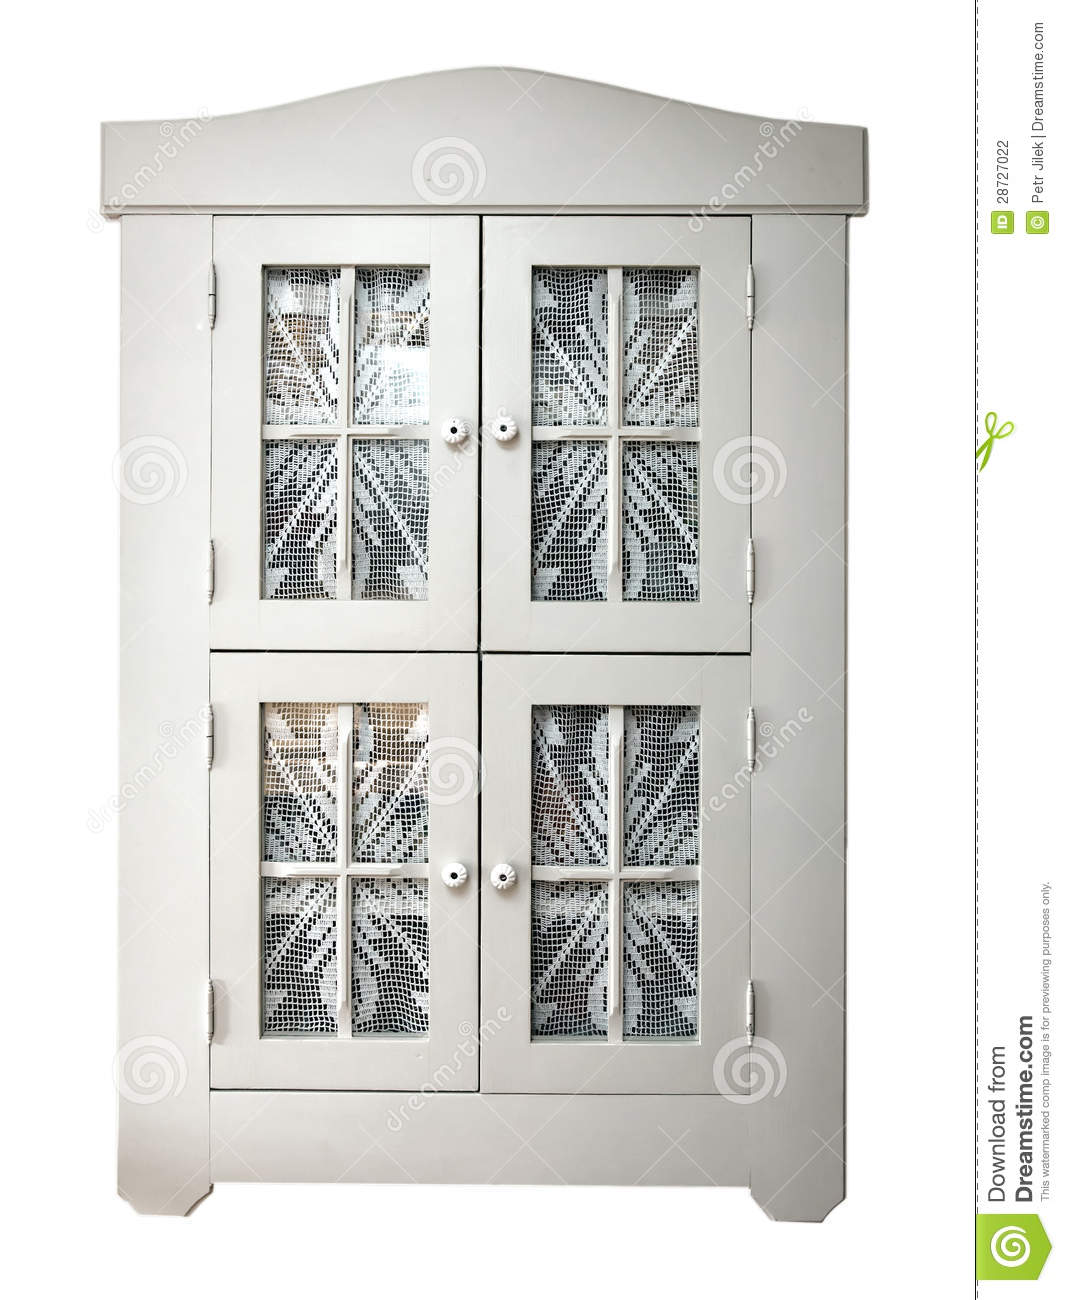 Kitchen Cabinets With Curtains Instead Of Doors: Cabinets With Curtains Stock Photography